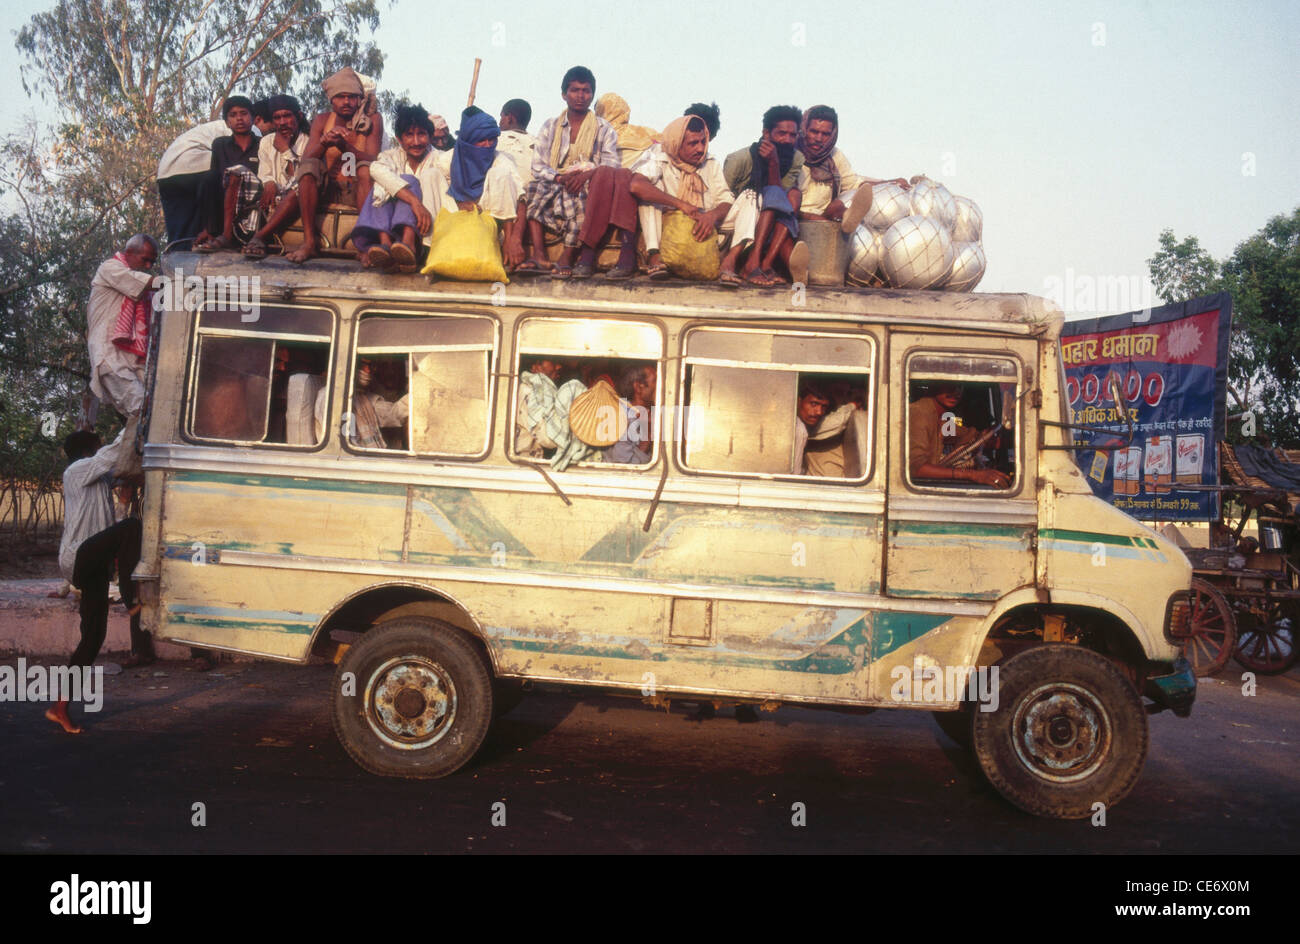 Image result for overcrowded buses in bihar